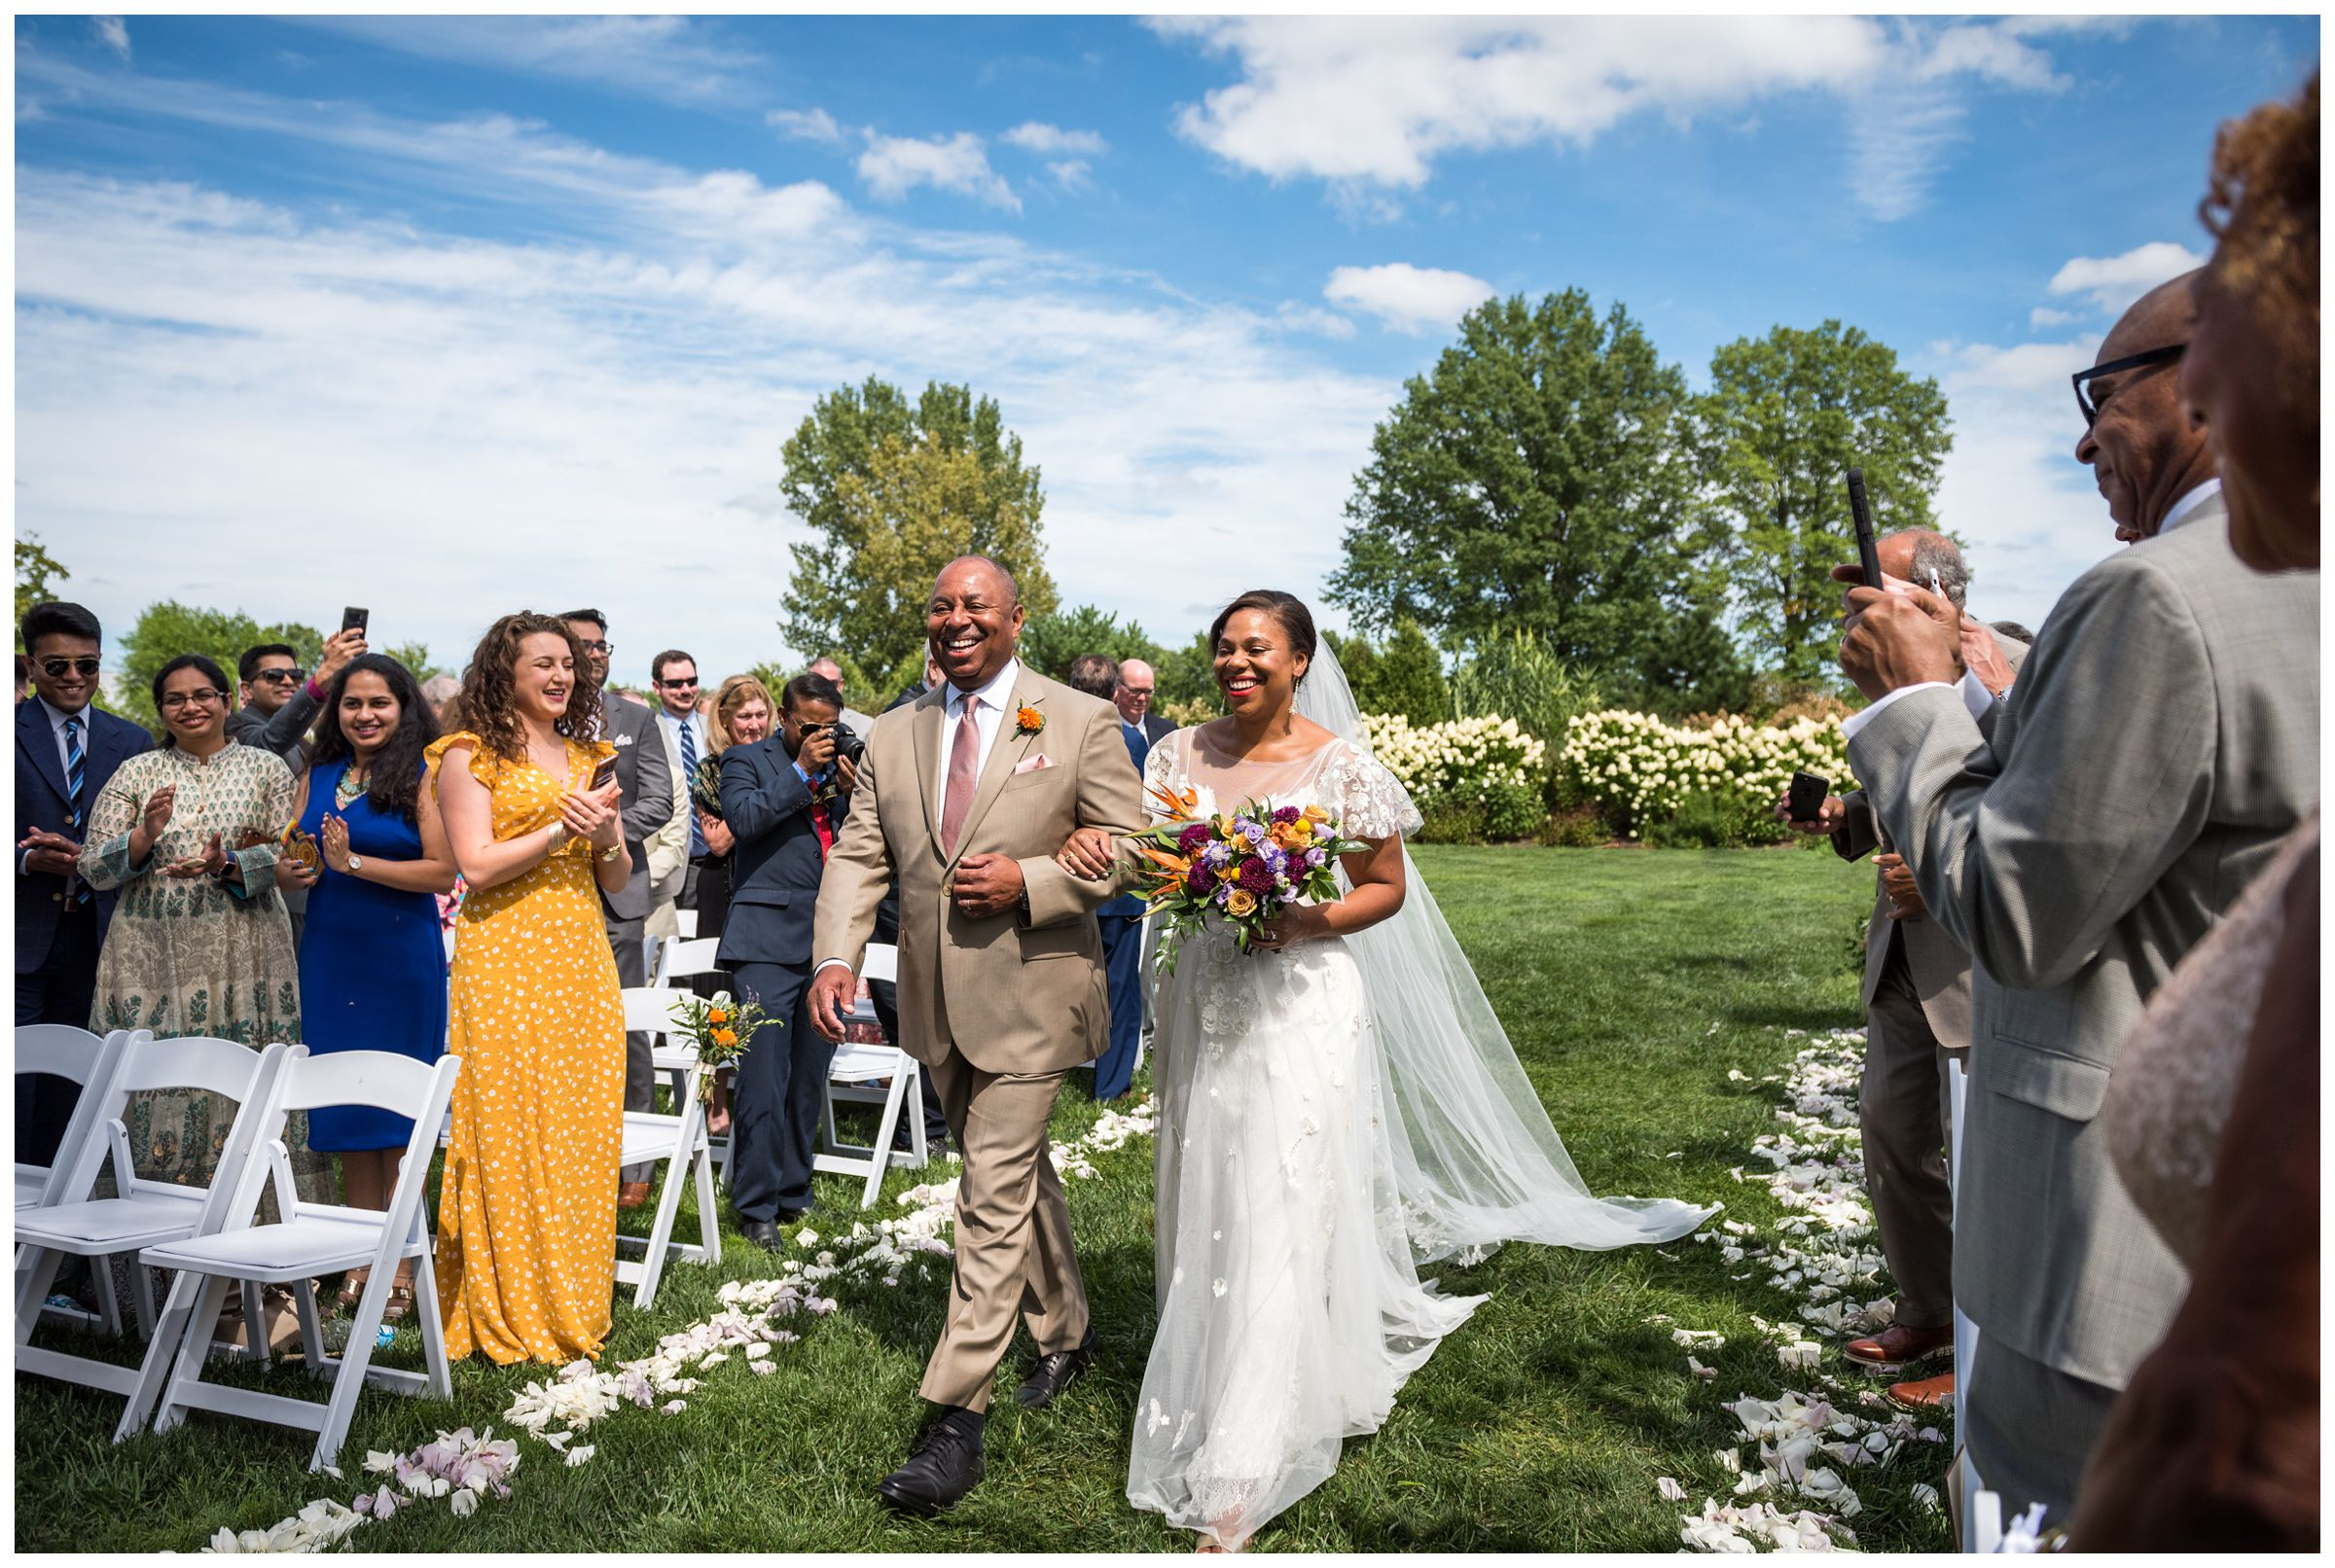 African American bride walking down aisle with father during summer Jorgensen Farms wedding